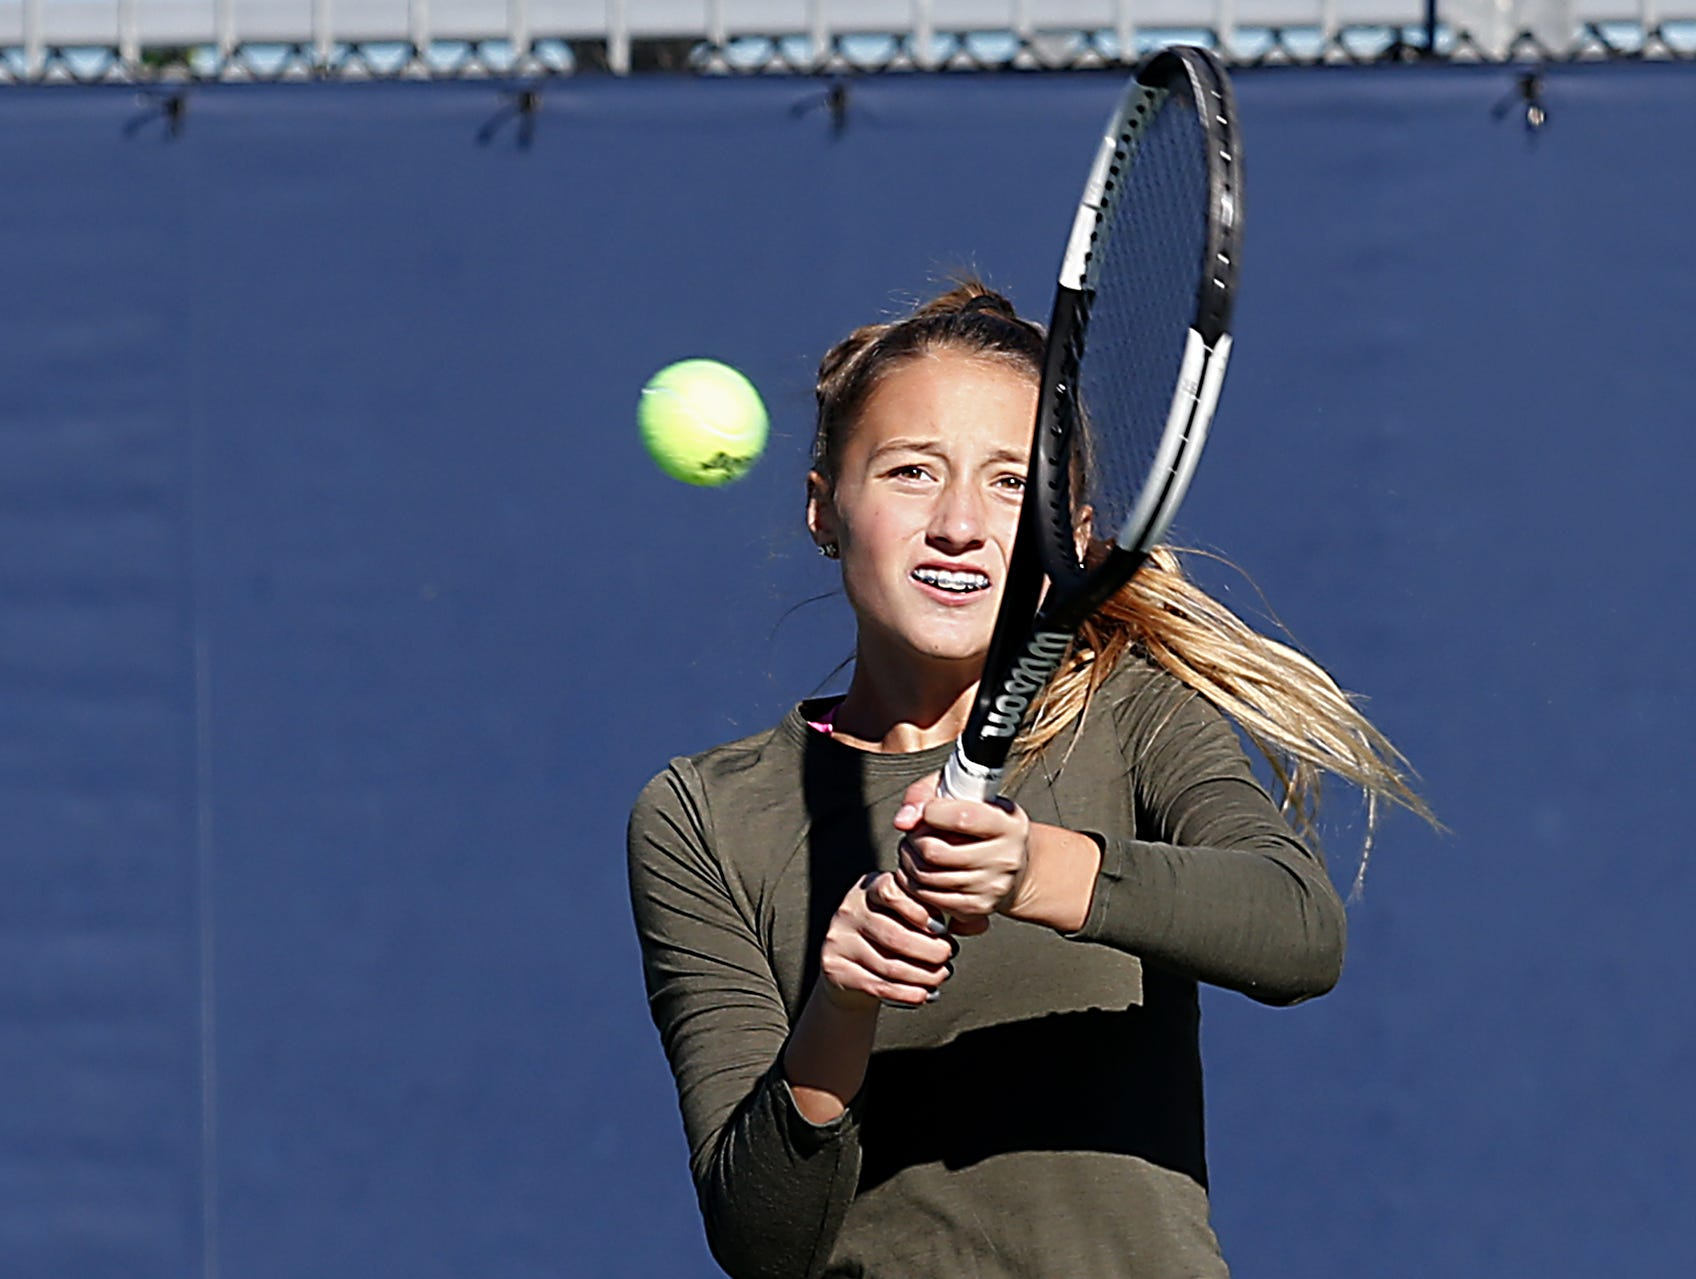 Ursuline's Bridget Estes returns a volley during the Division I doubles bracket at the Lindner Family Tennis Center in Mason Friday, Oct. 19, 2018.